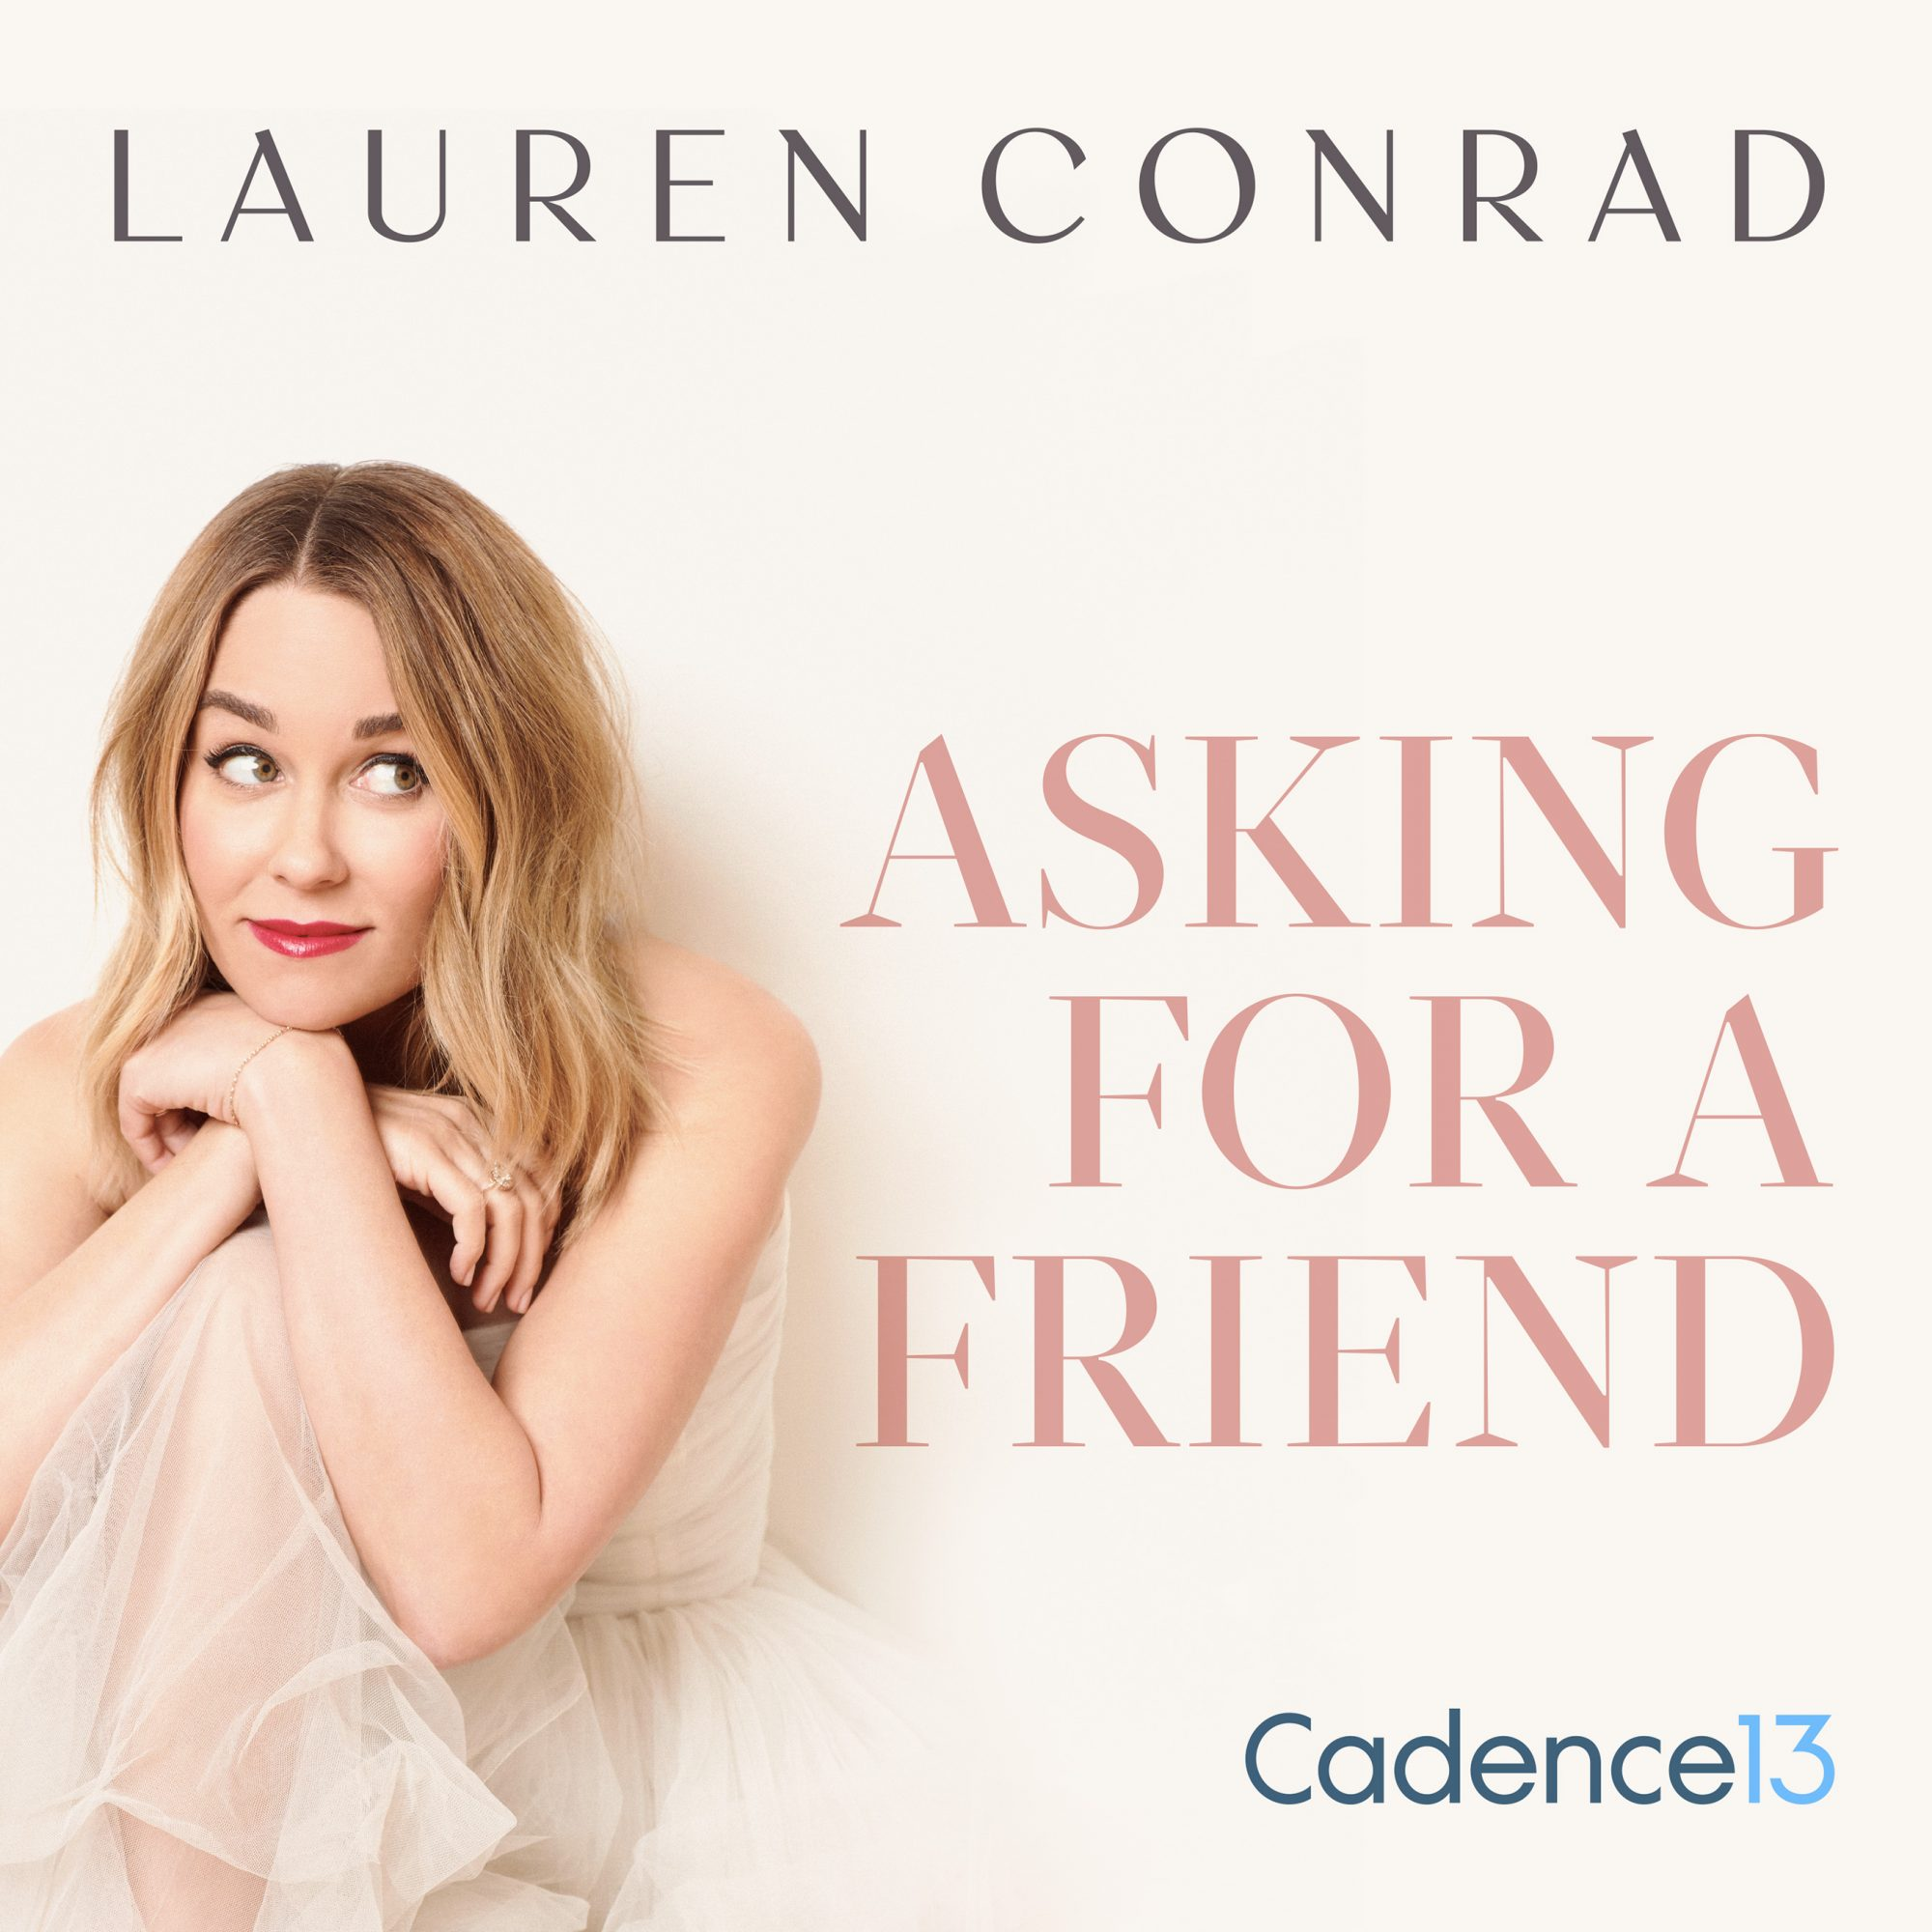 Lauren Conrad - Asking for a Friend - Cadence